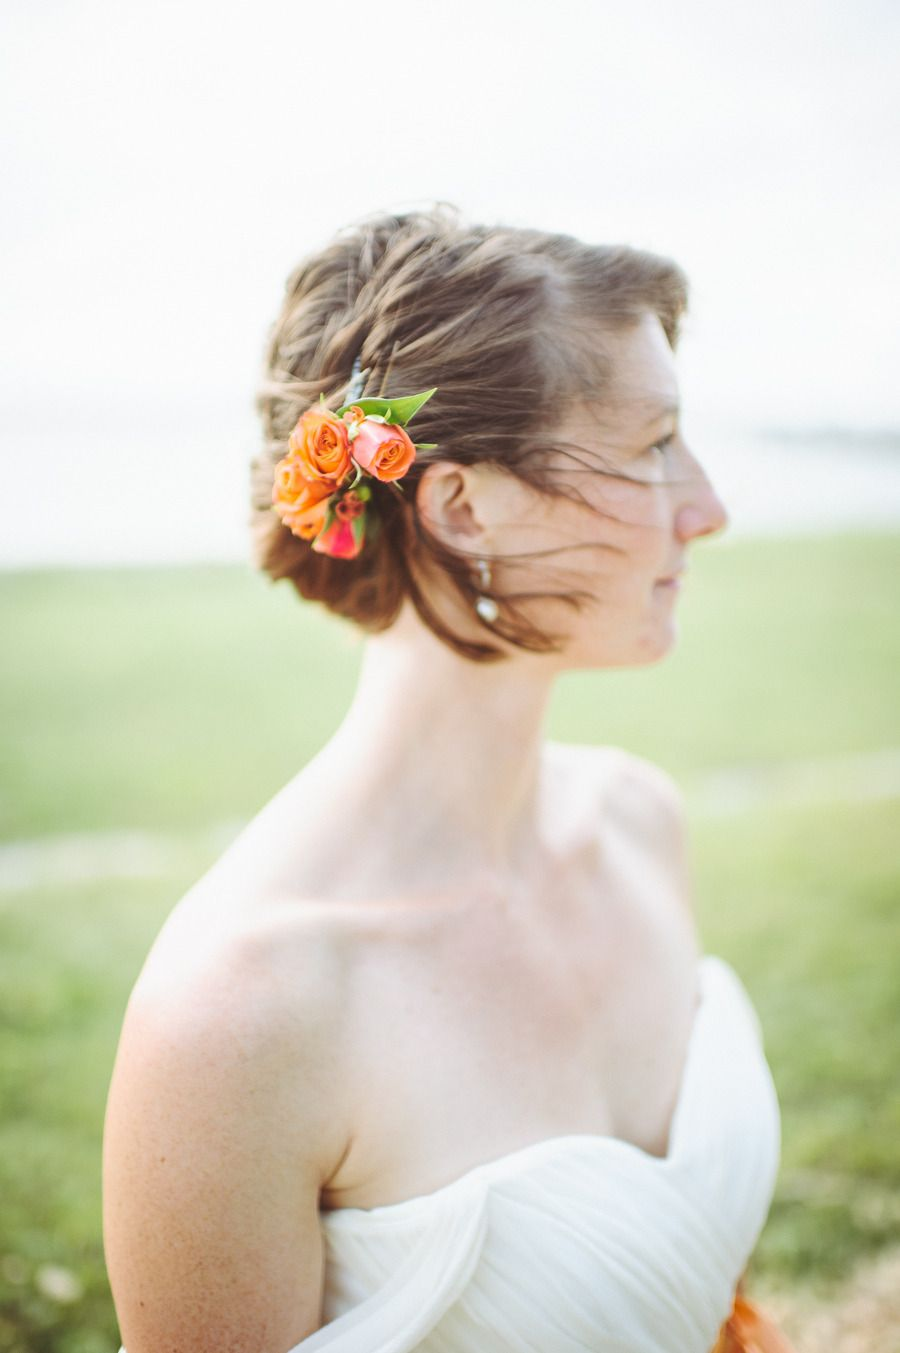 thompson island, massachusetts wedding from paper antler